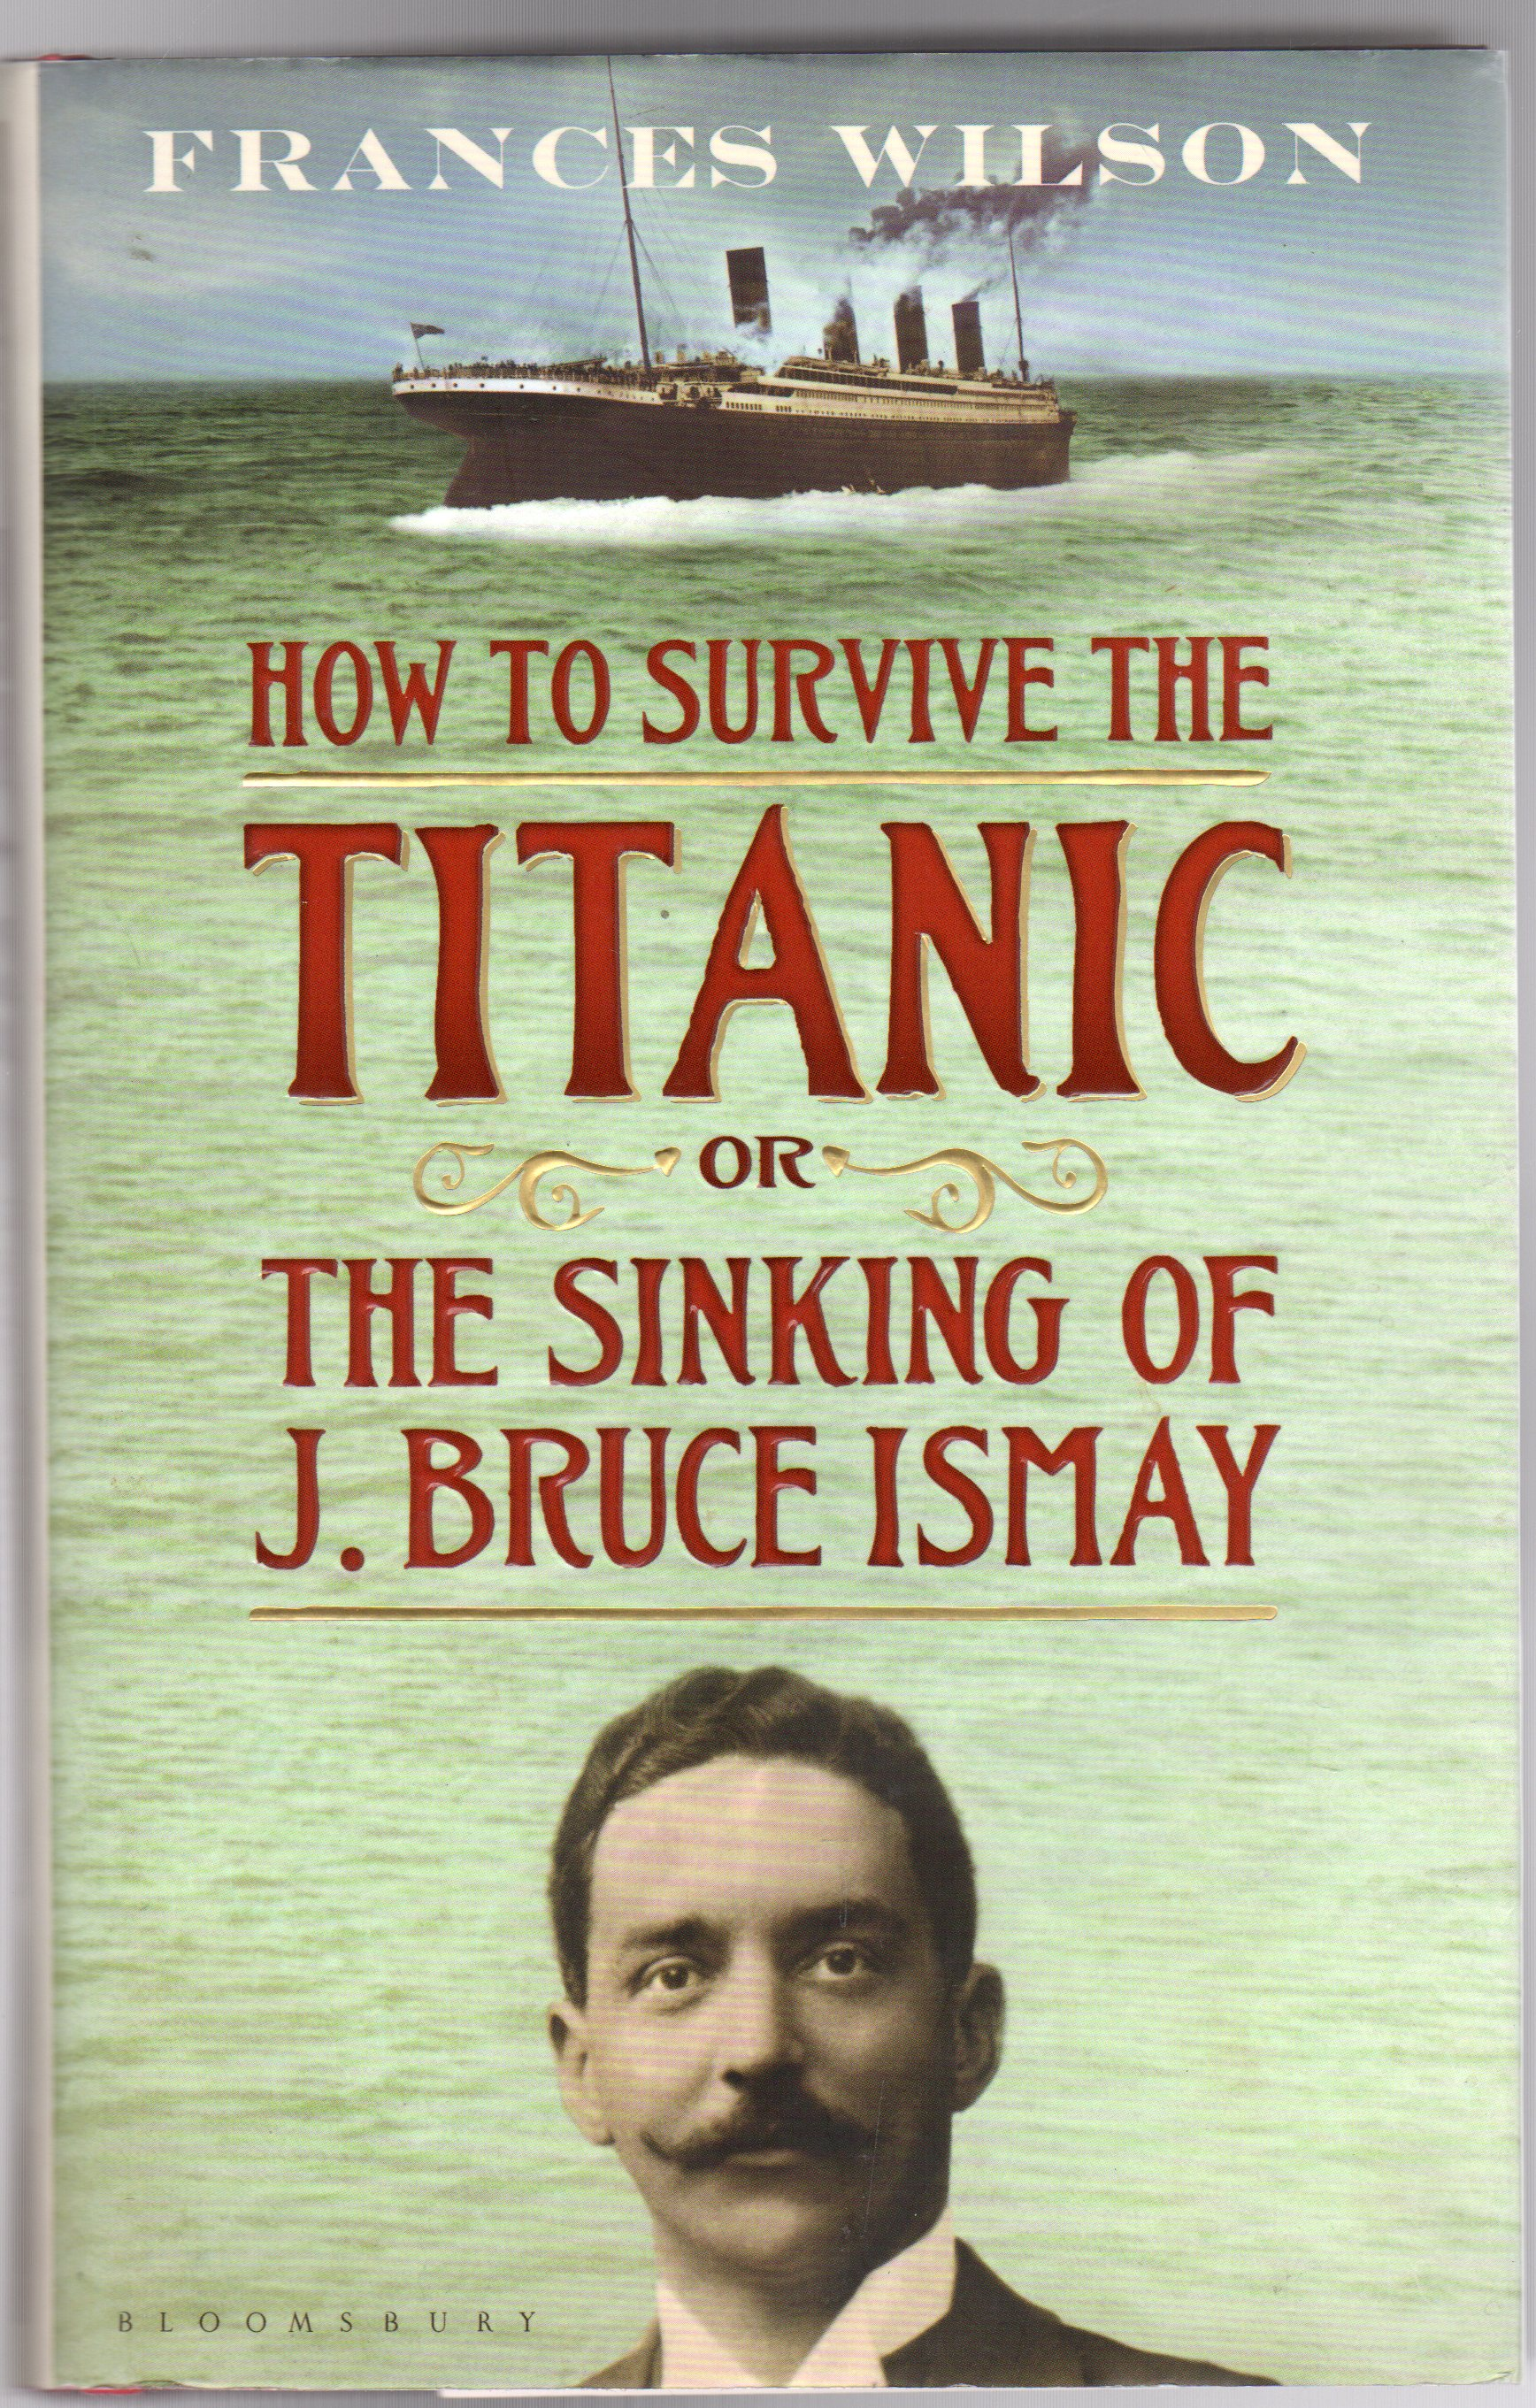 Image for How to Survive the Titanic or The Sinking of J. Bruce Ismay (SIGNED COPY)